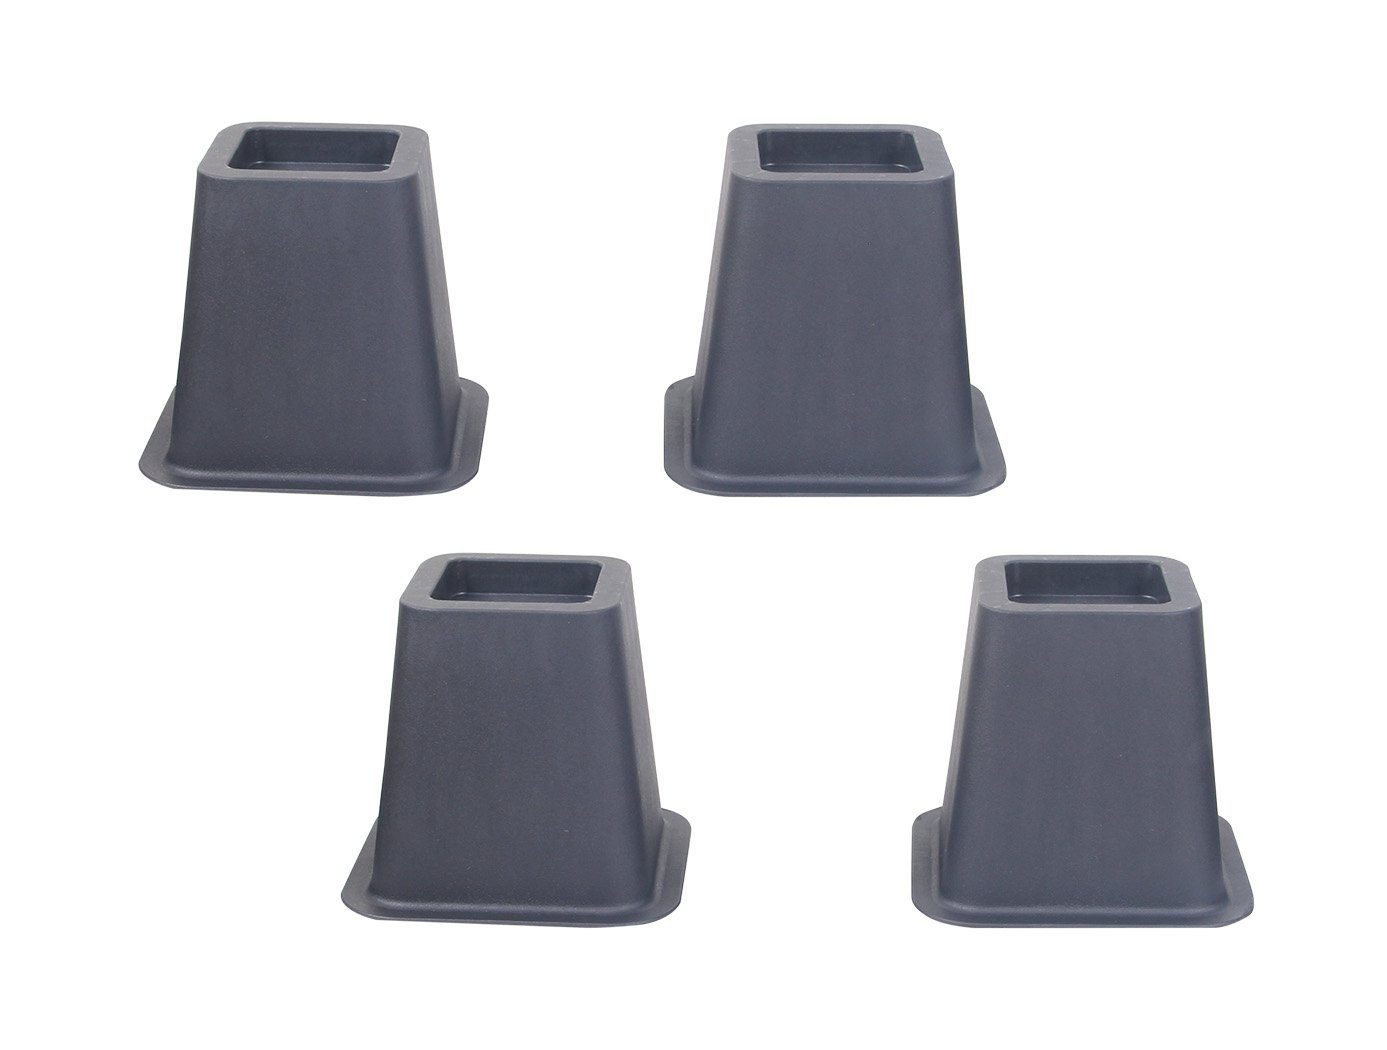 EASYGOING 4-pack 5.25 Inch Height Bed Risers, Furniture Riser Bed Riser and Bed Lifts,Helps you storage under the bed